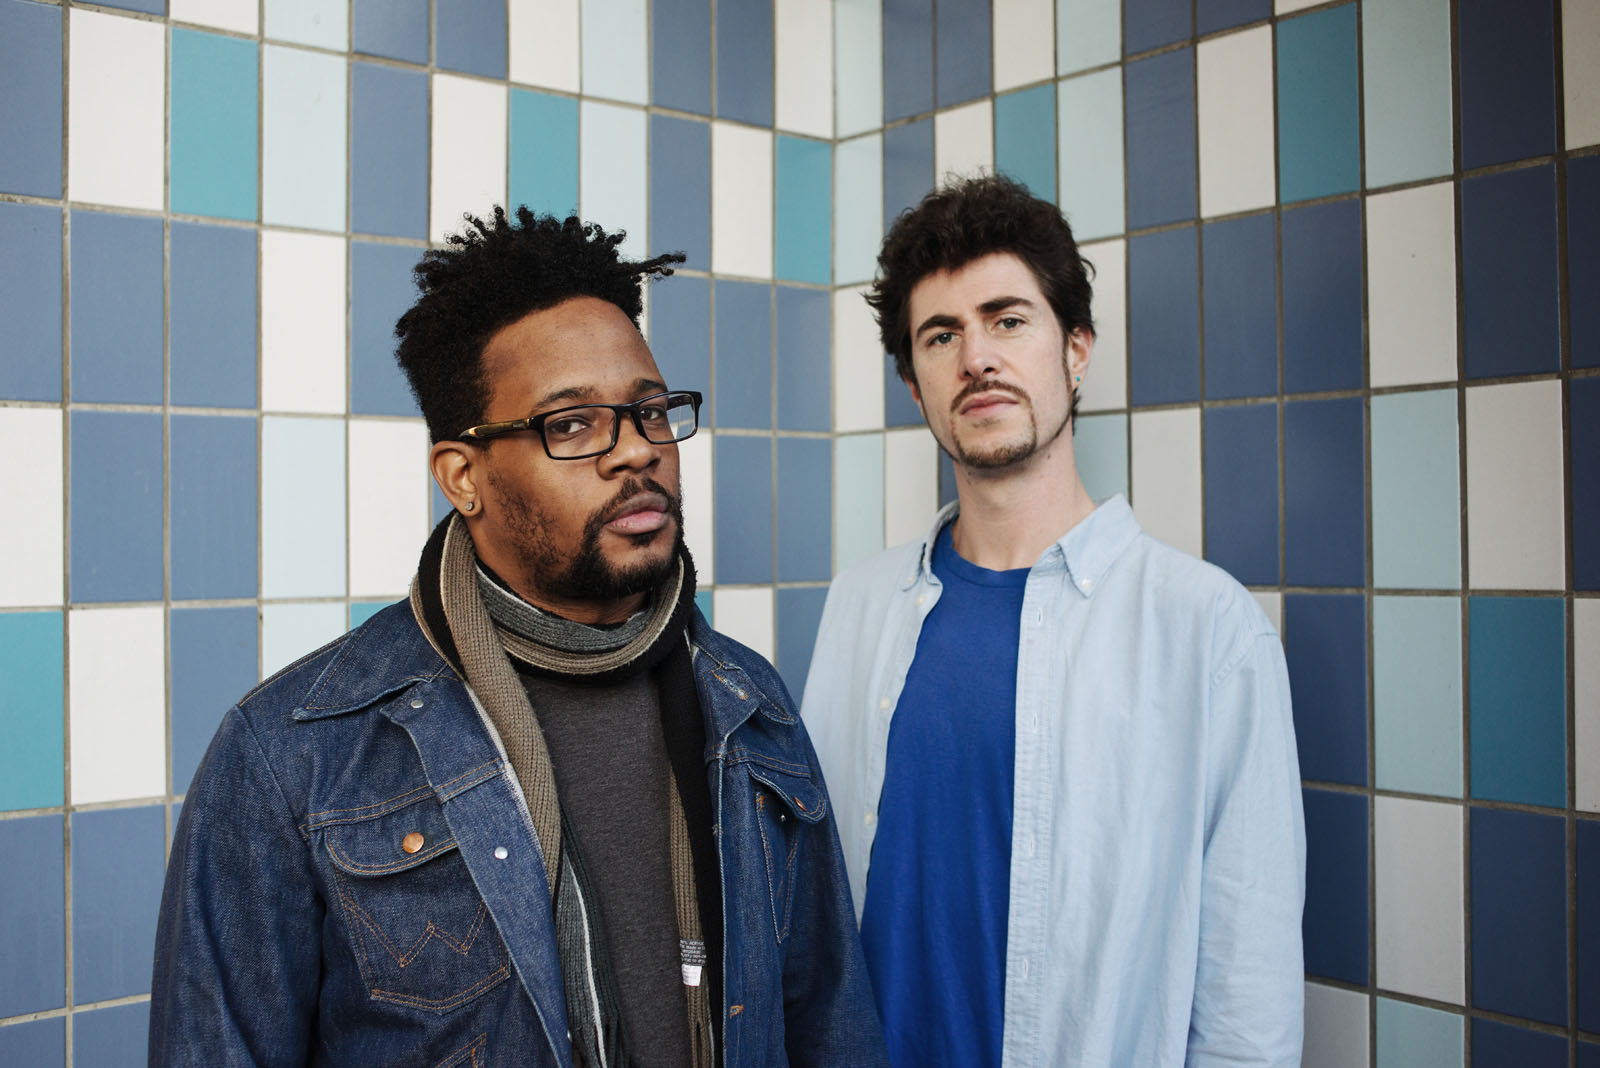 Open Mike Eagle and Paul White announce new album 'Hella Personal Film Festival',